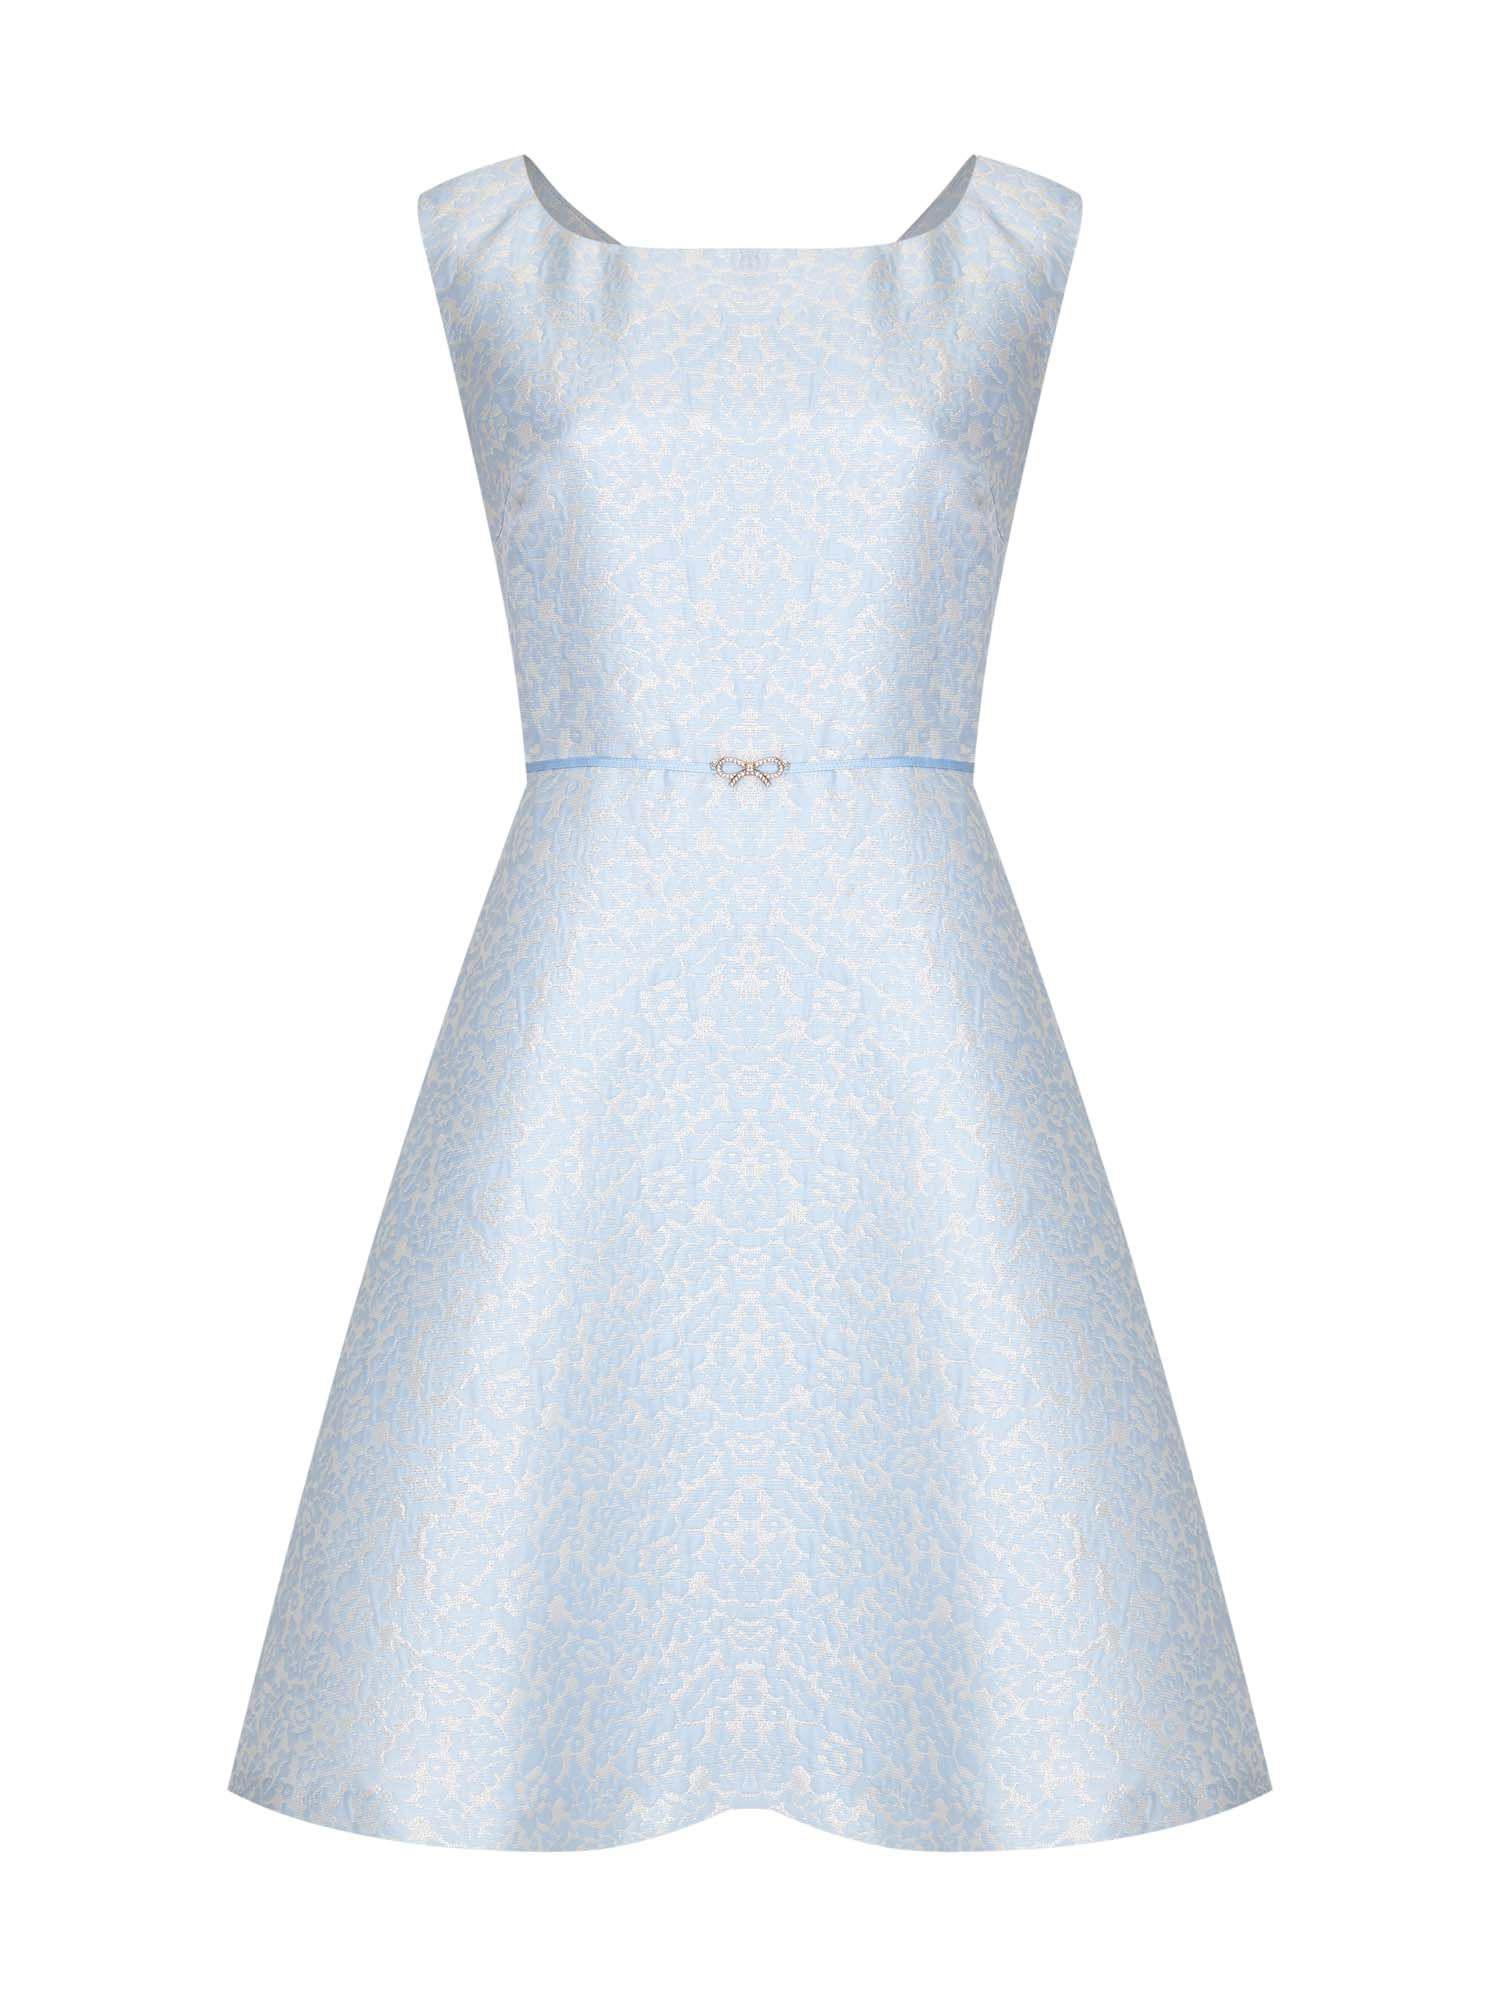 Yumi Jacquard BowTrim Dress, Blue